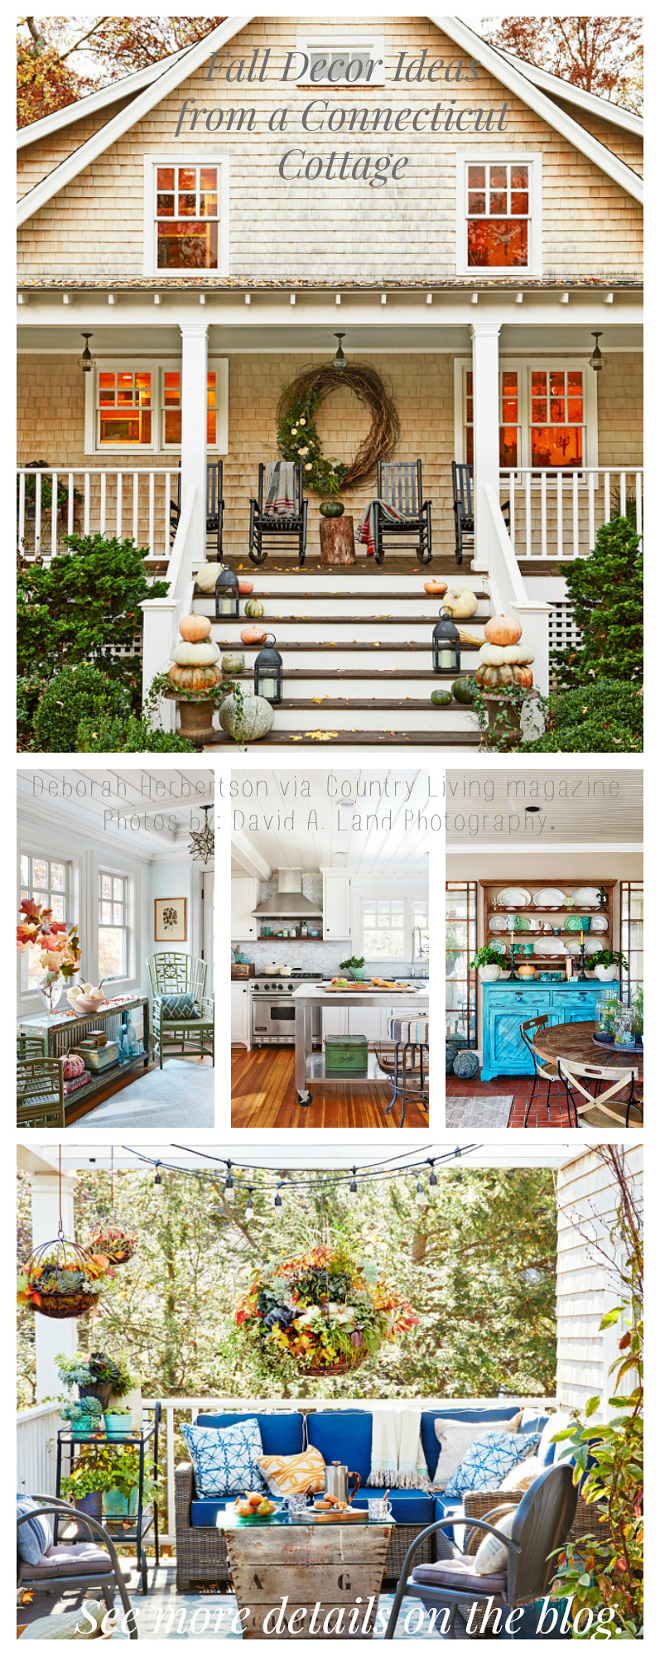 fall-decor-ideas-from-a-connecticut-cottage